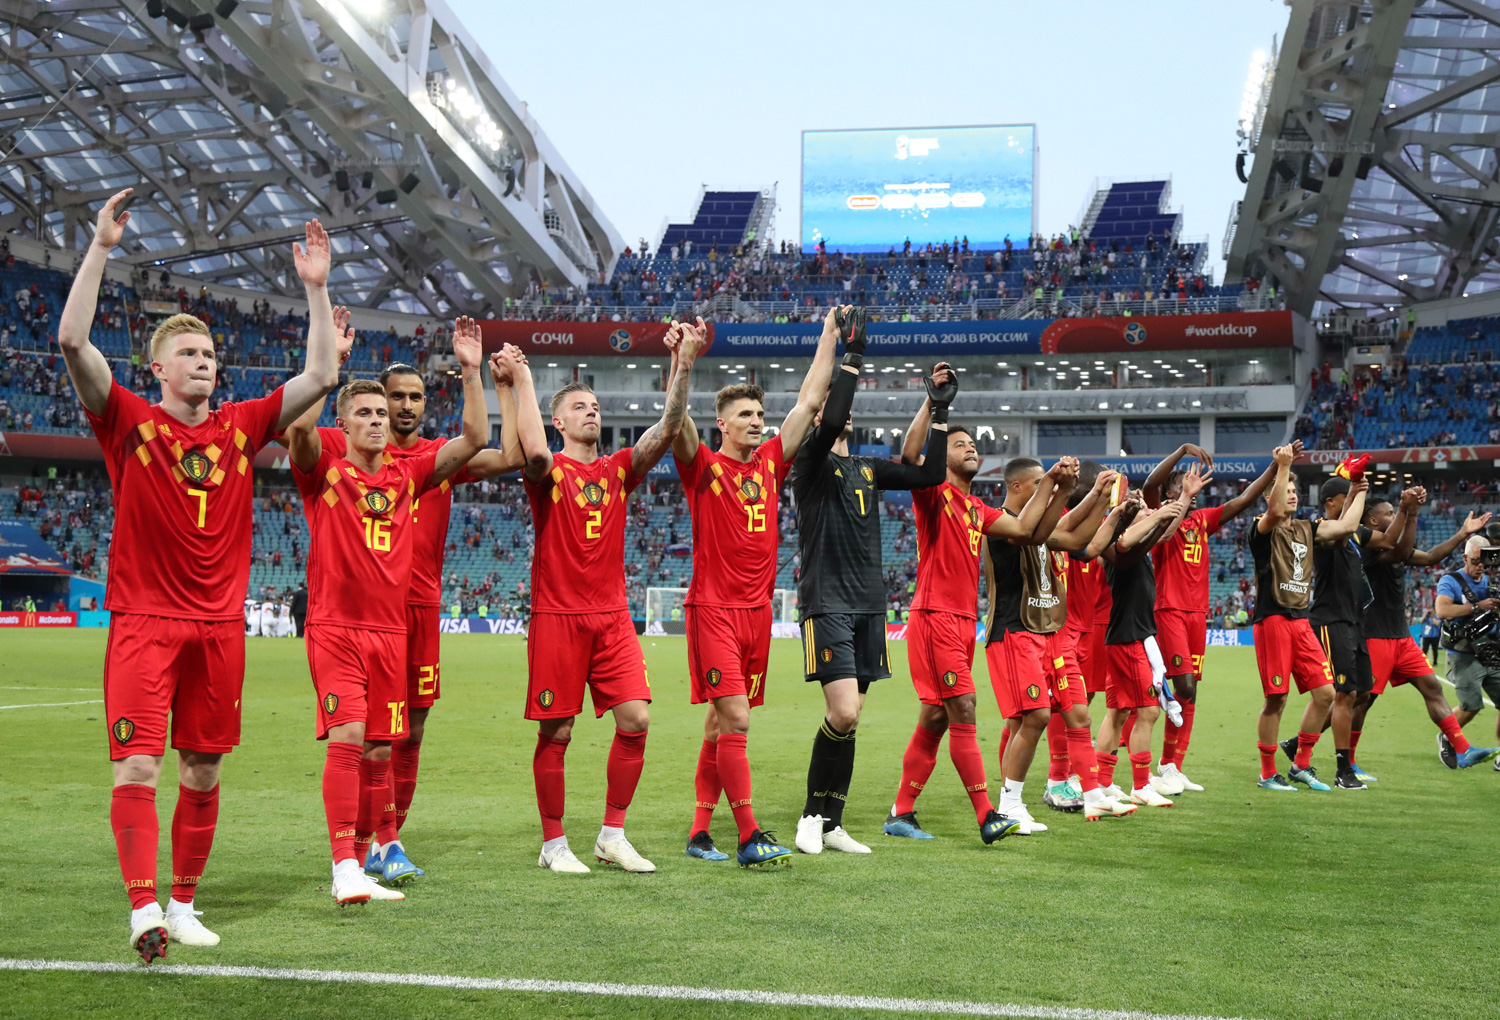 <div class='meta'><div class='origin-logo' data-origin='none'></div><span class='caption-text' data-credit='Matthias Schrader/AP'>Belgium's team celebrates after winning the group G match between Belgium and Panama at the 2018 soccer World Cup</span></div>